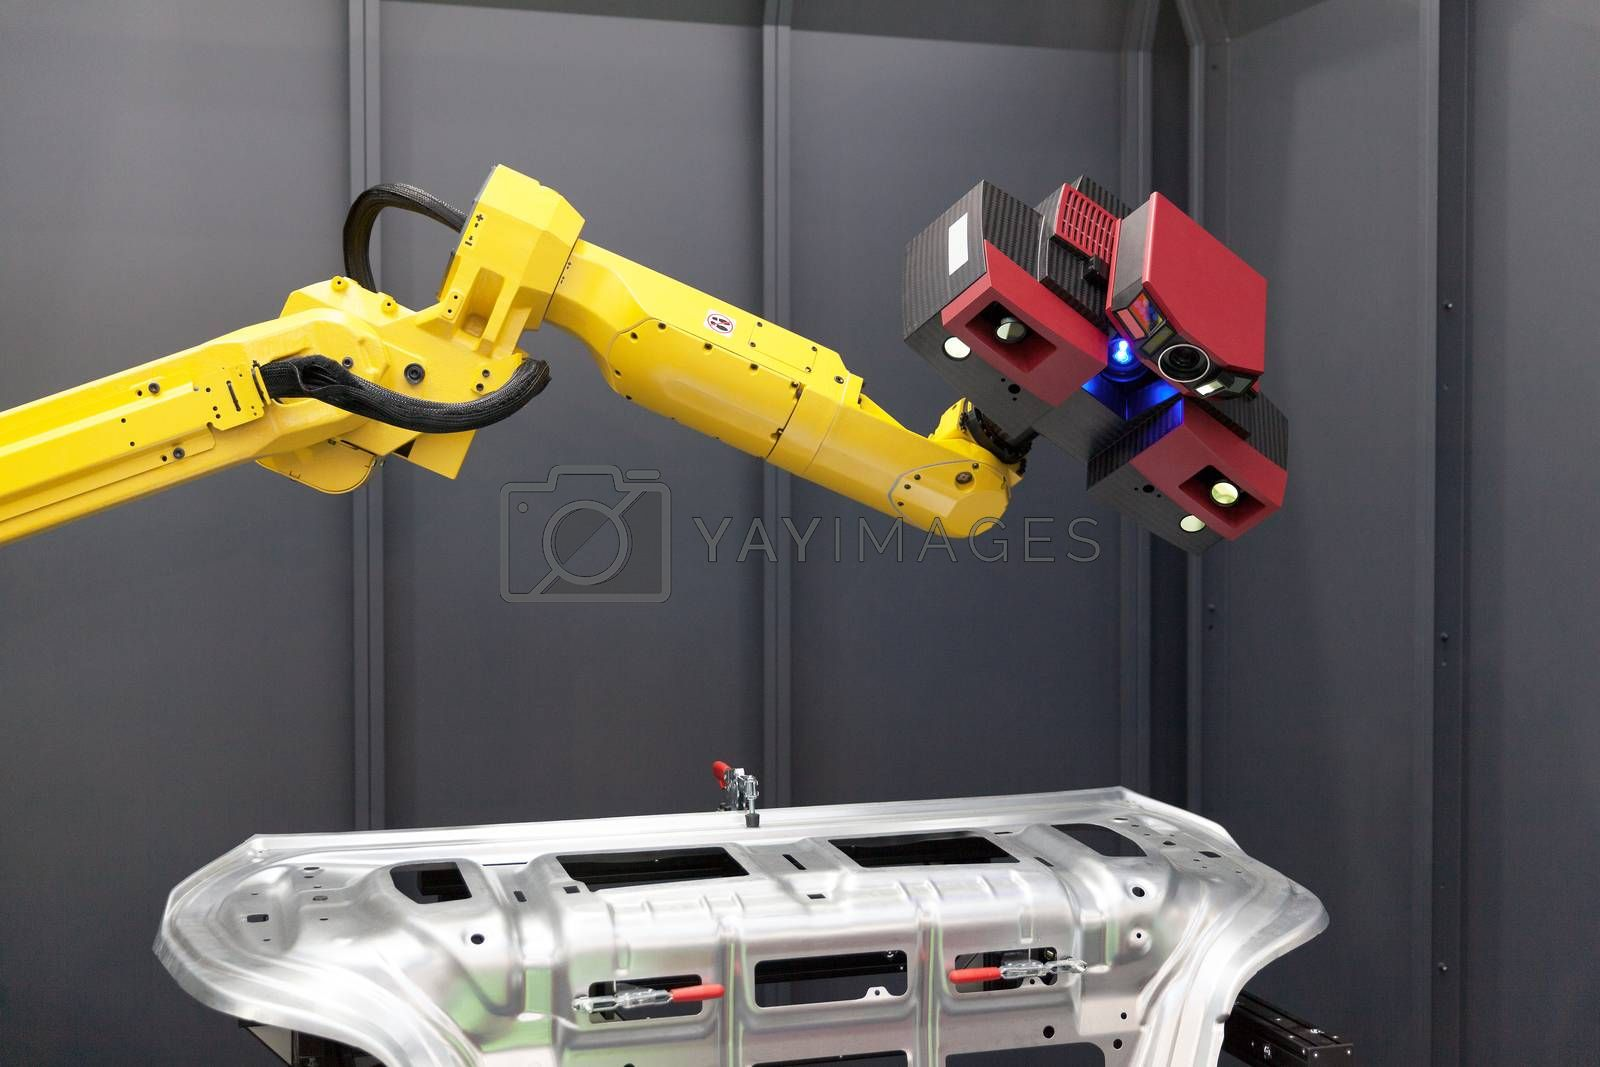 Combined 3D scanner and robotic arm automate scanning. Optical 3D coordinate measuring machine.